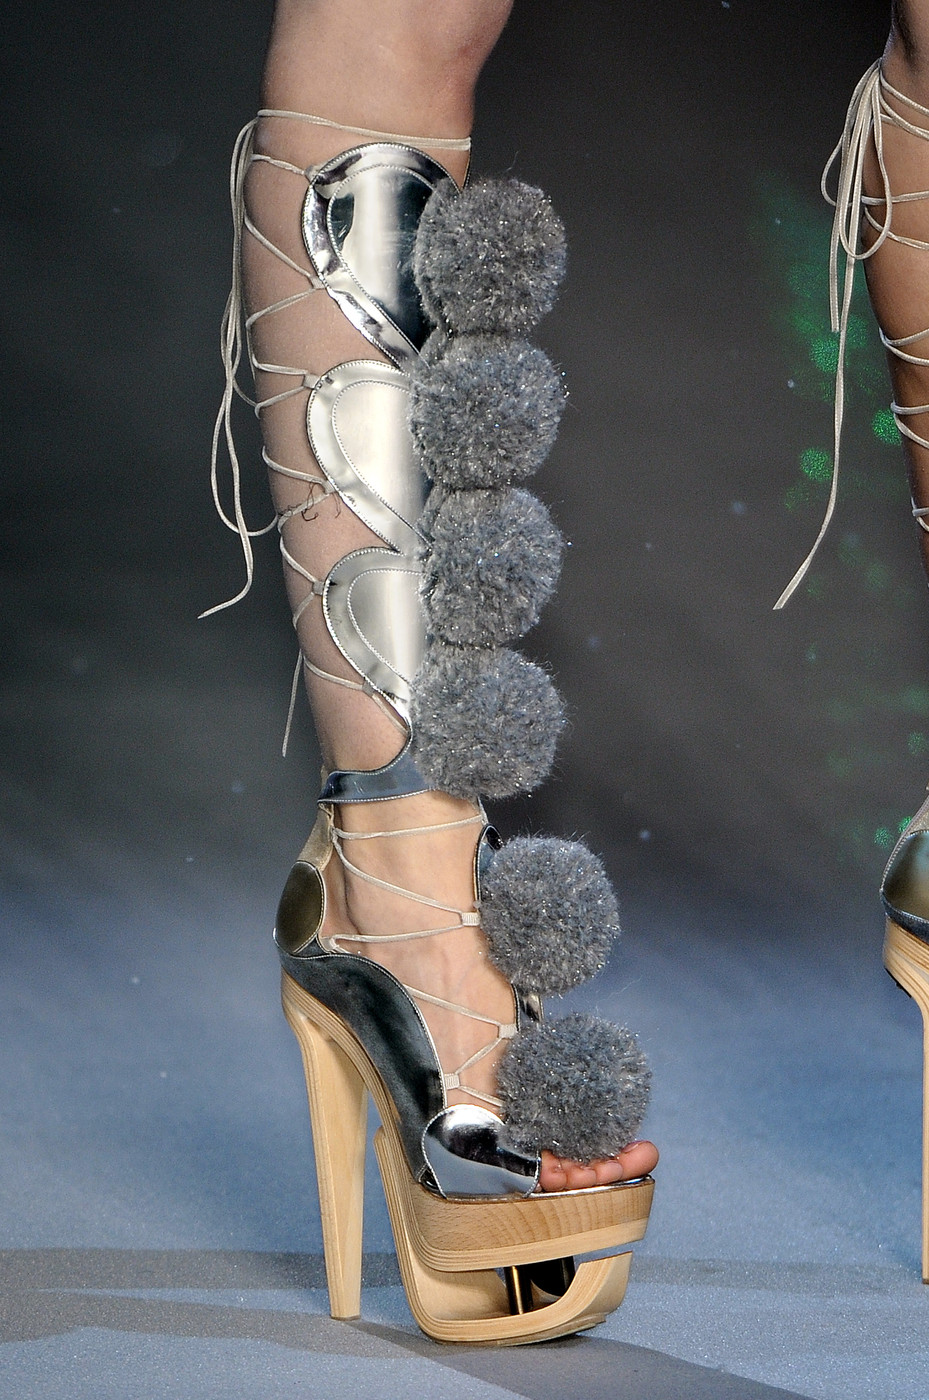 File:John Galliano Fall 2009 Lace-Up Pom Pom Sandals.jpg